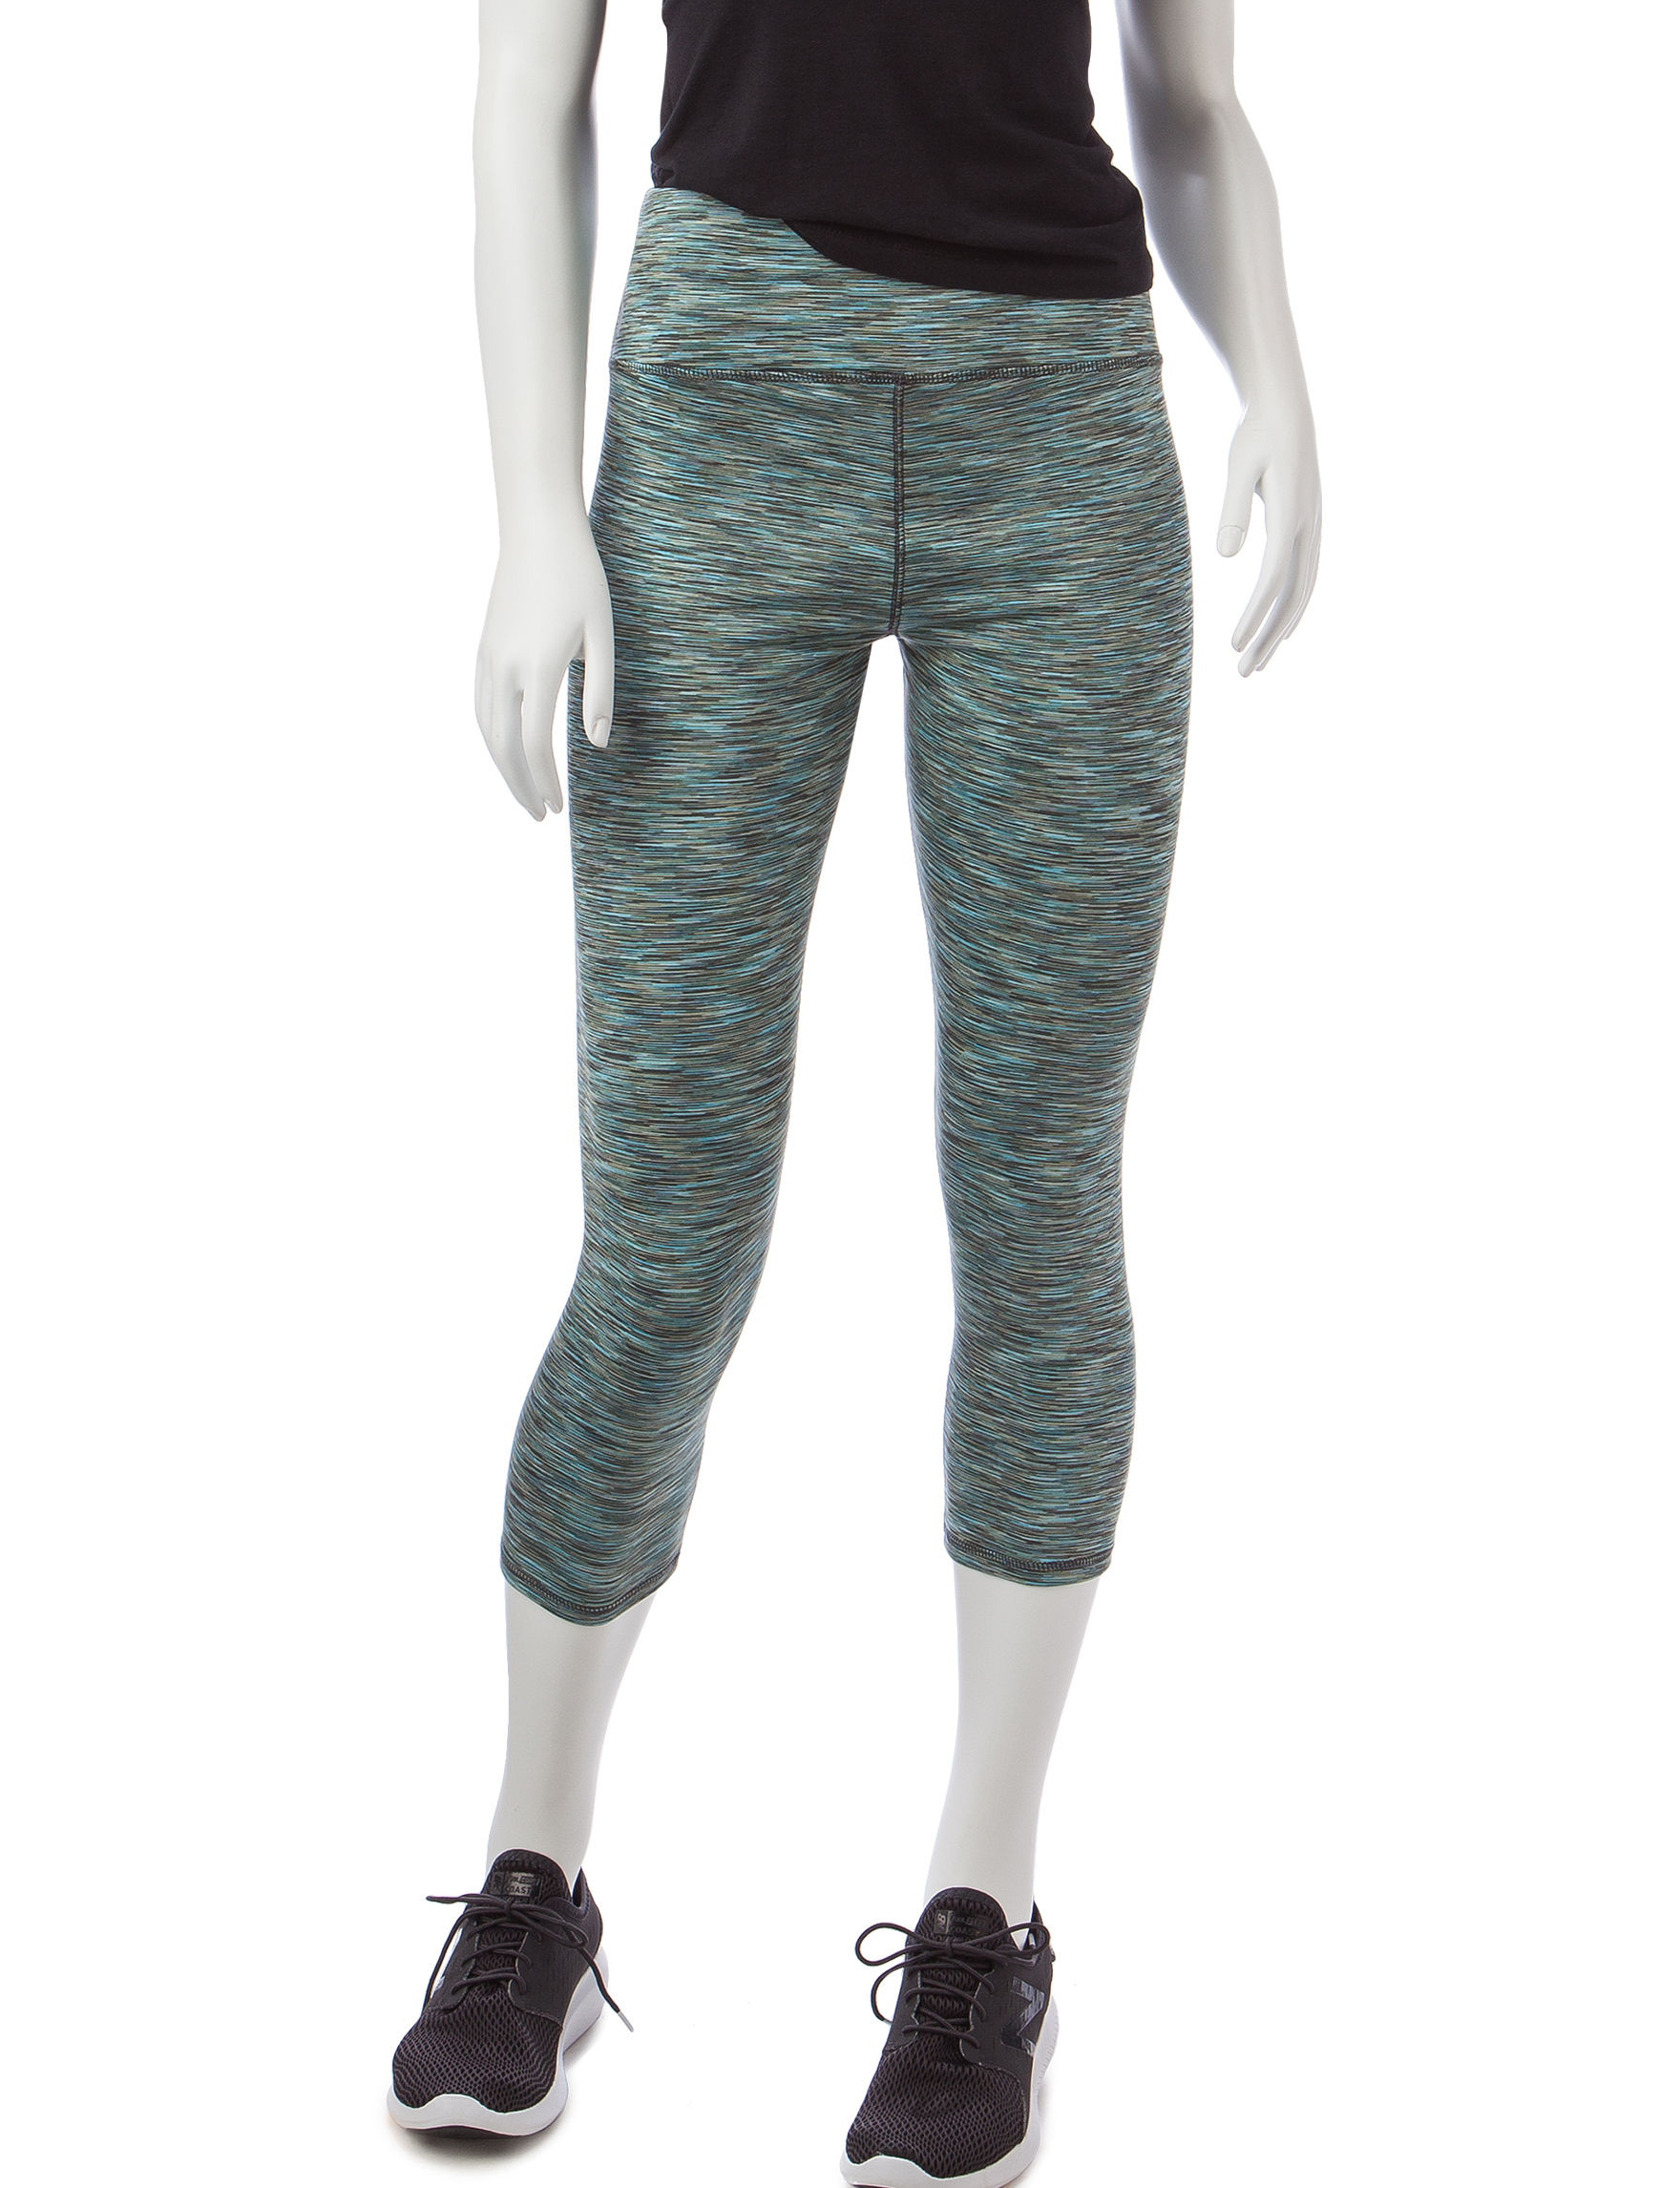 RBX Grey / Green Leggings